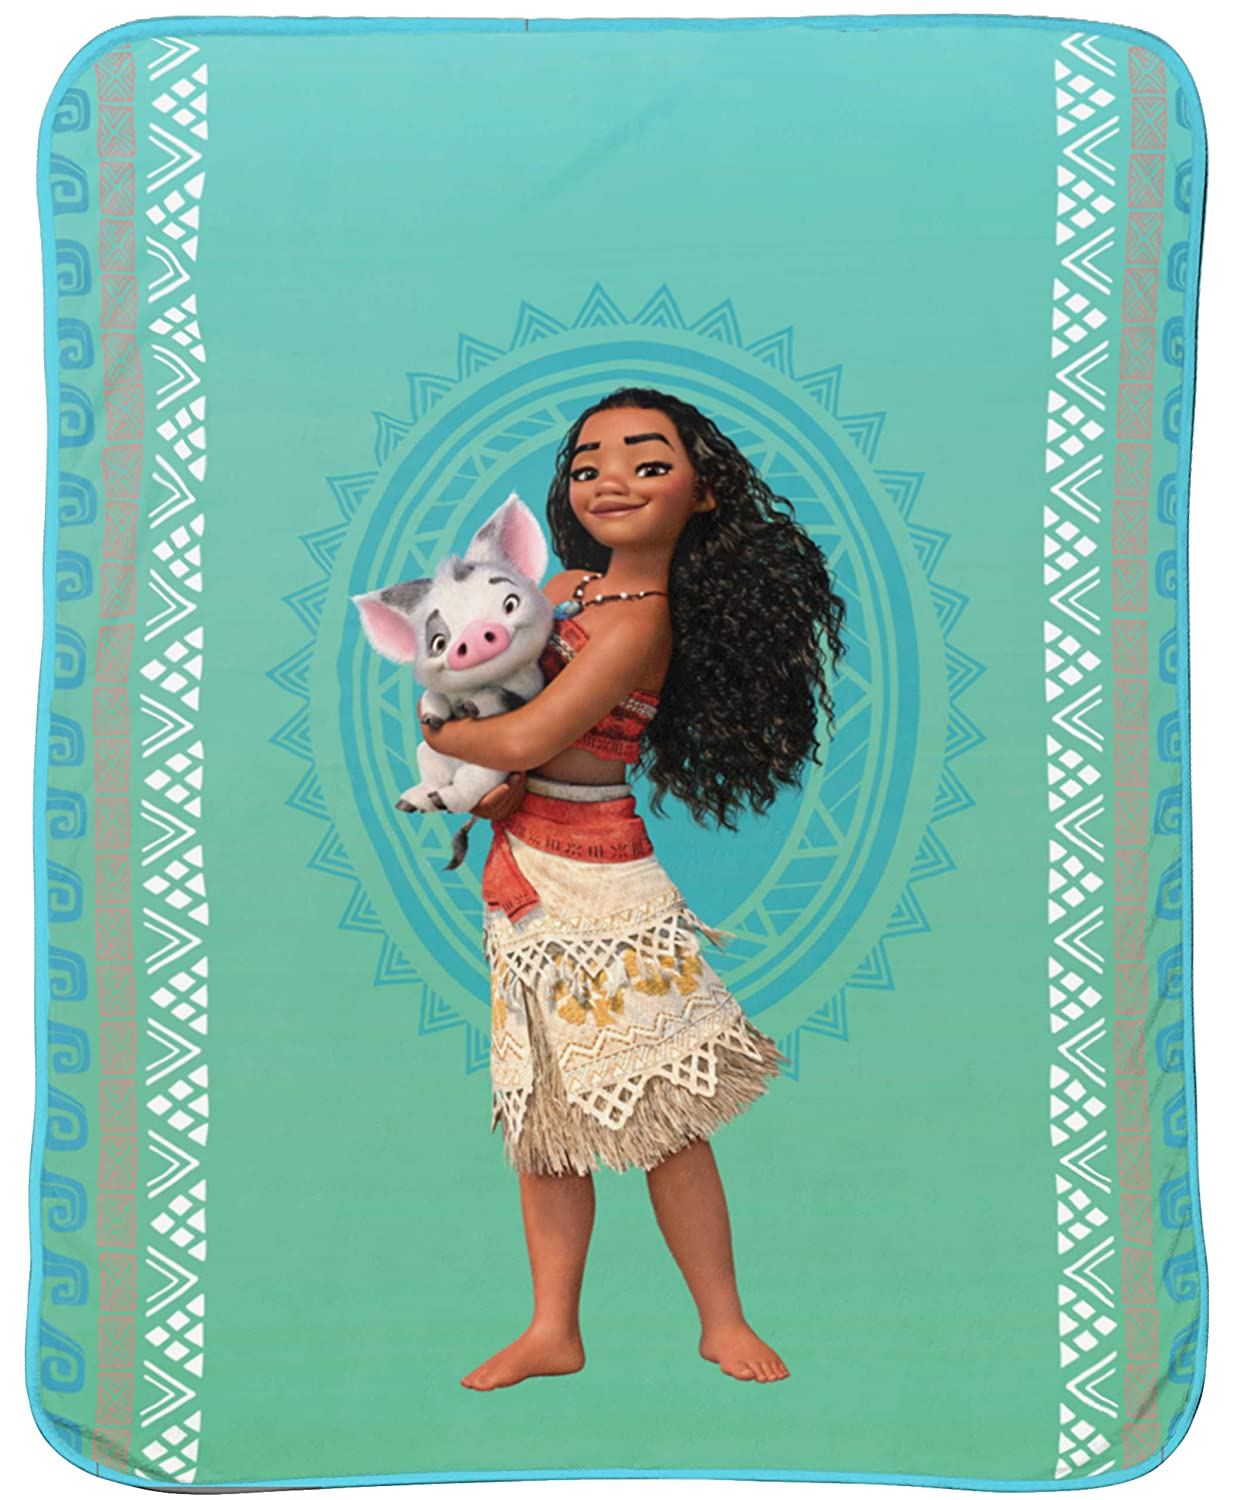 "Disney Moana 'The Wave' Plush 46"" x 60"" Throw"